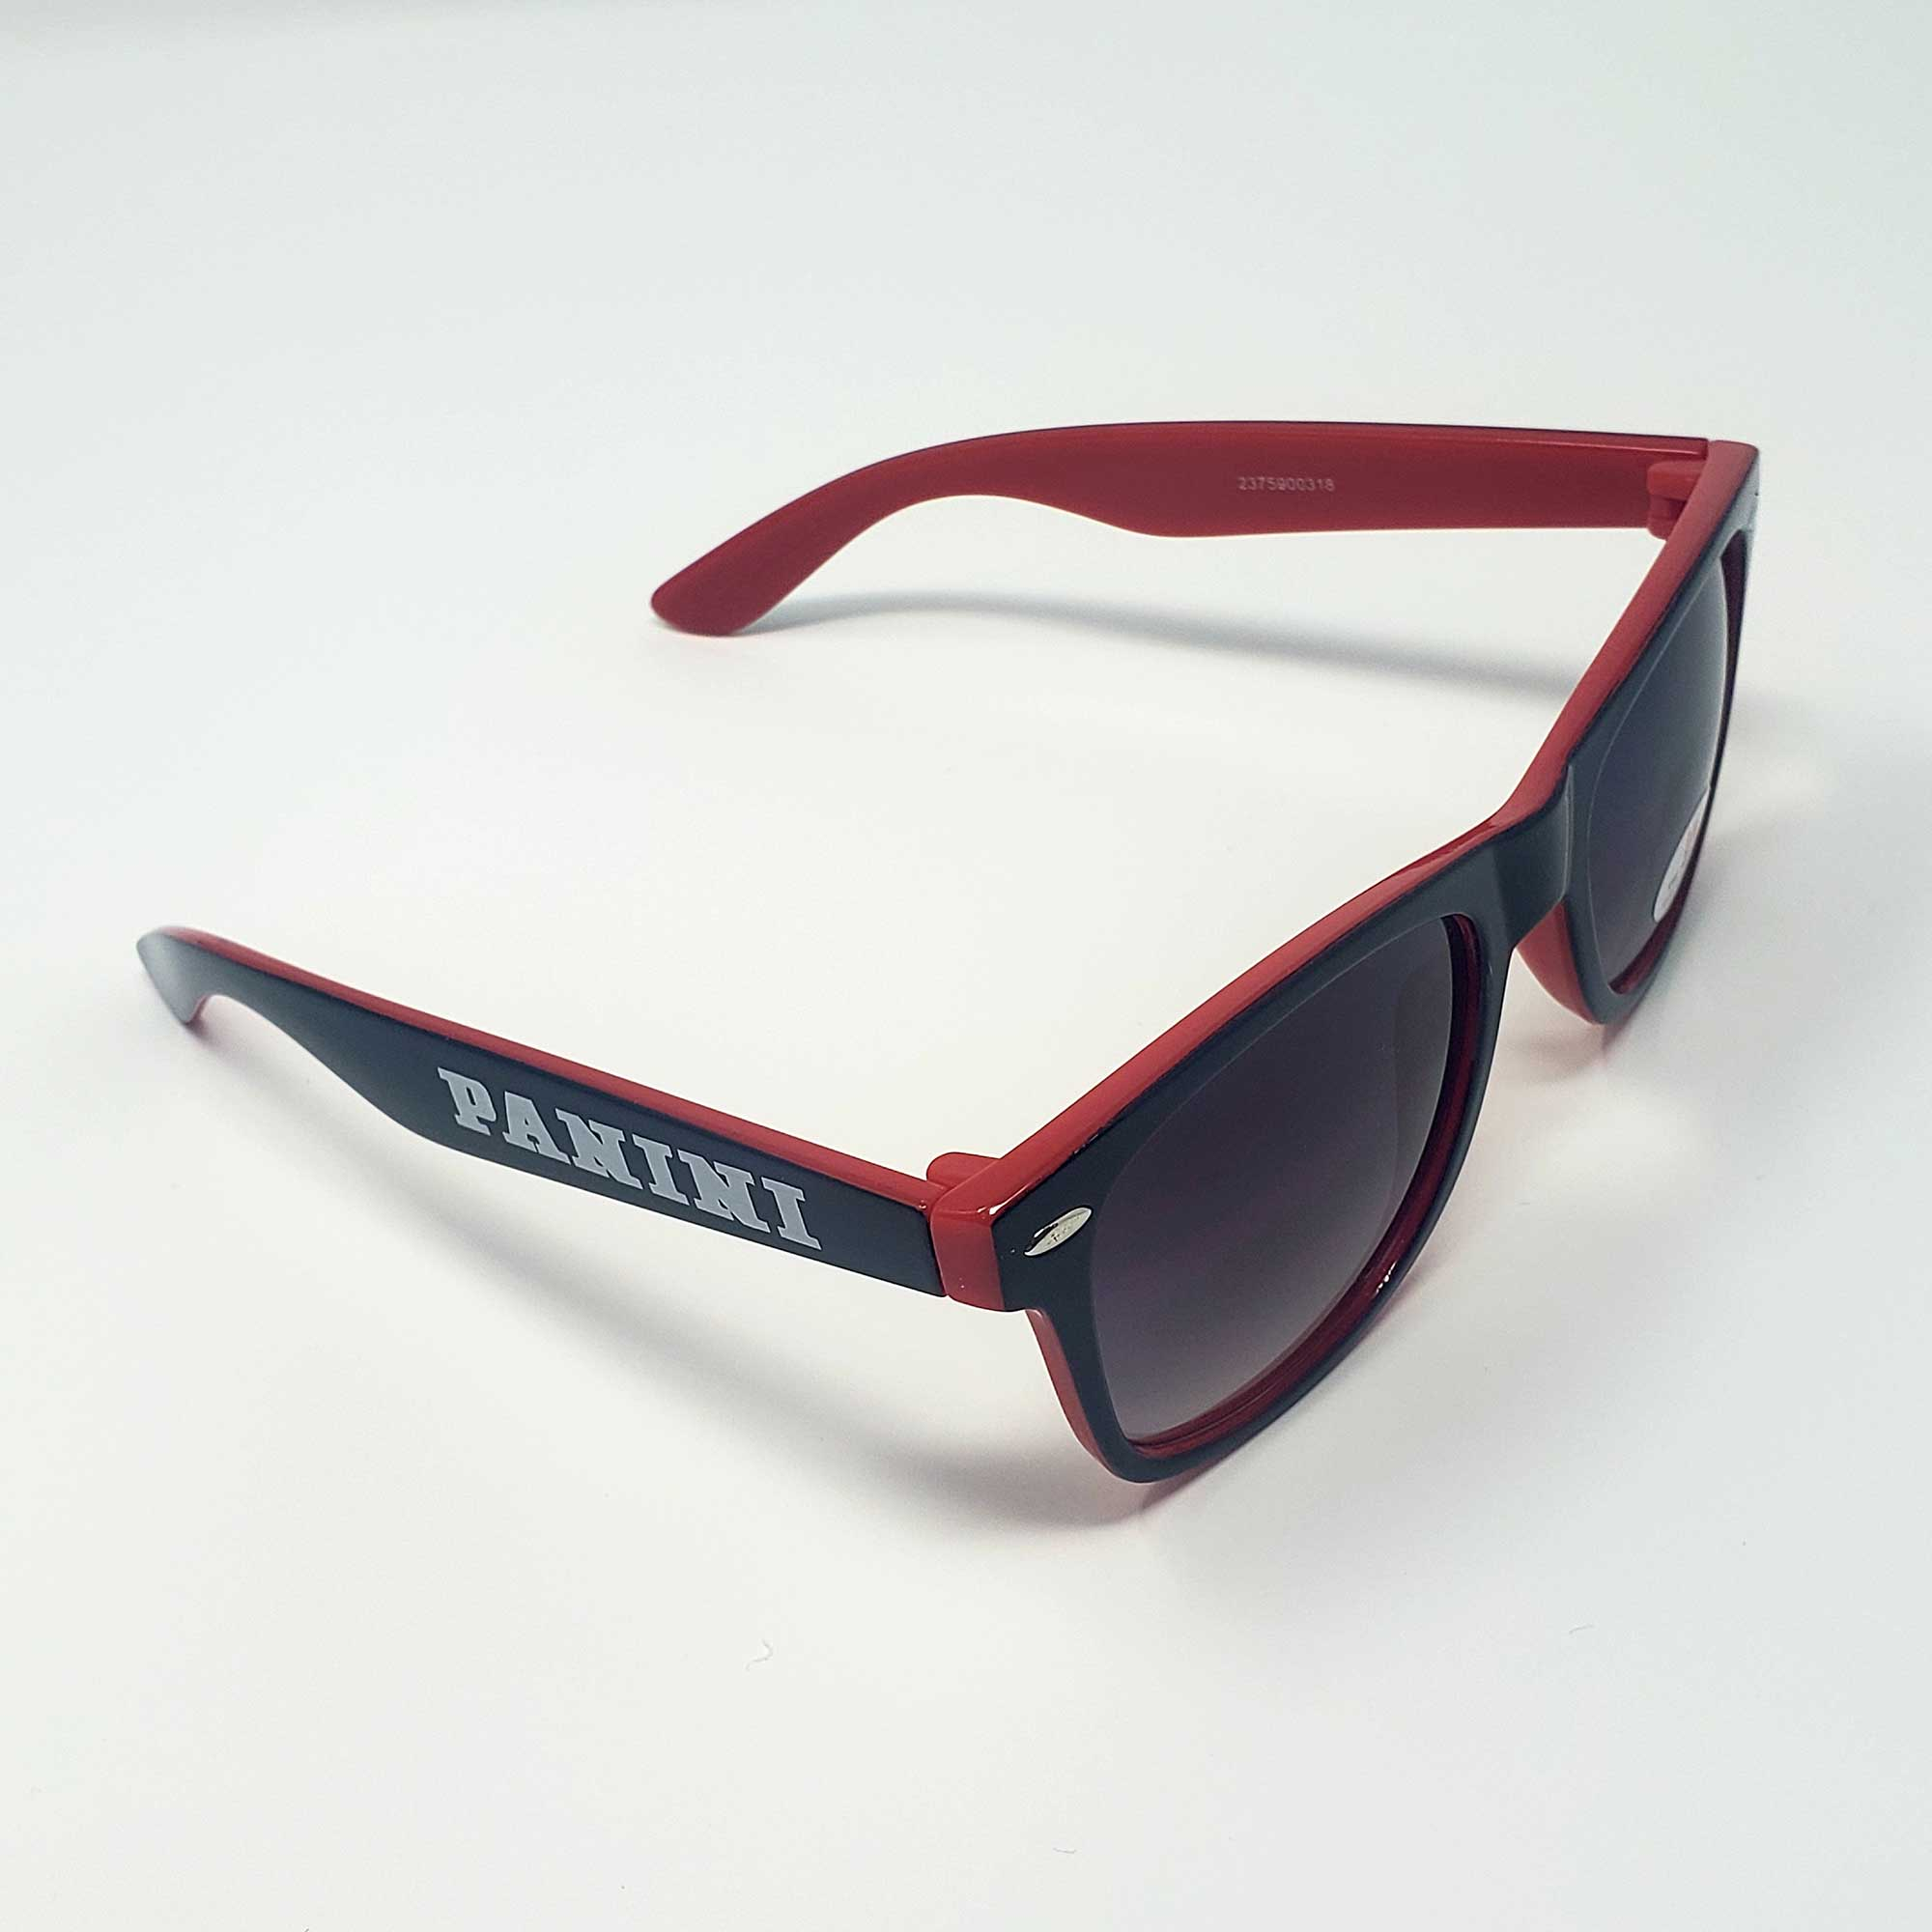 Red & Black Panini Sunglasses